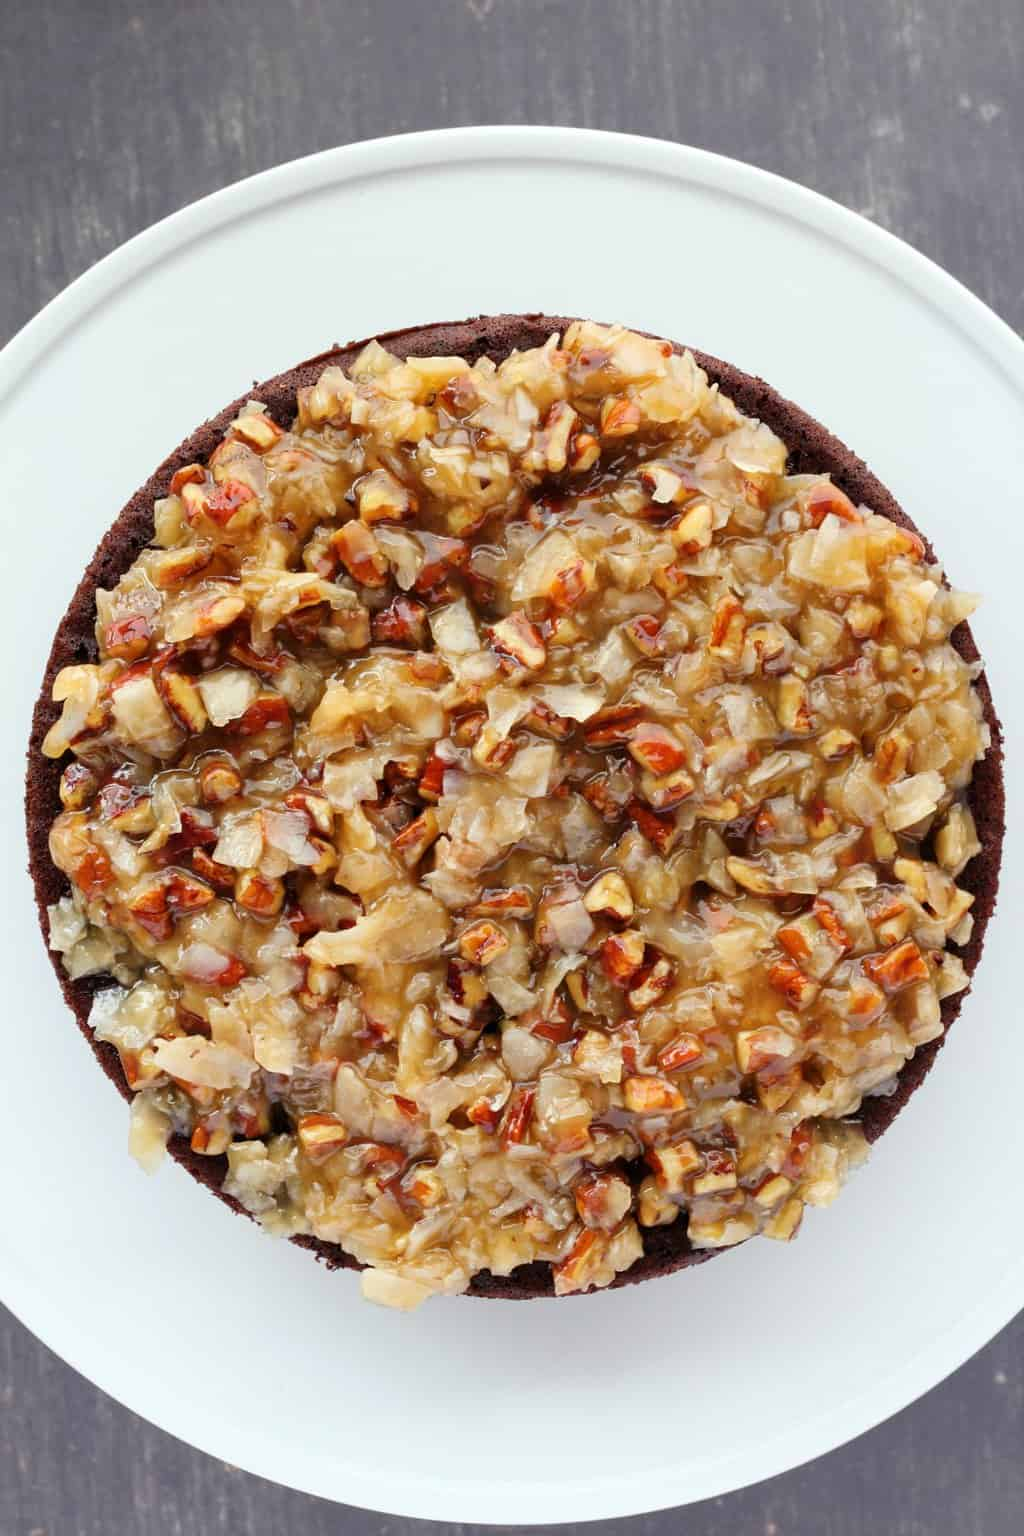 Assembling a vegan German chocolate cake, placing the coconut/pecan filling onto the first layer of chocolate cake.